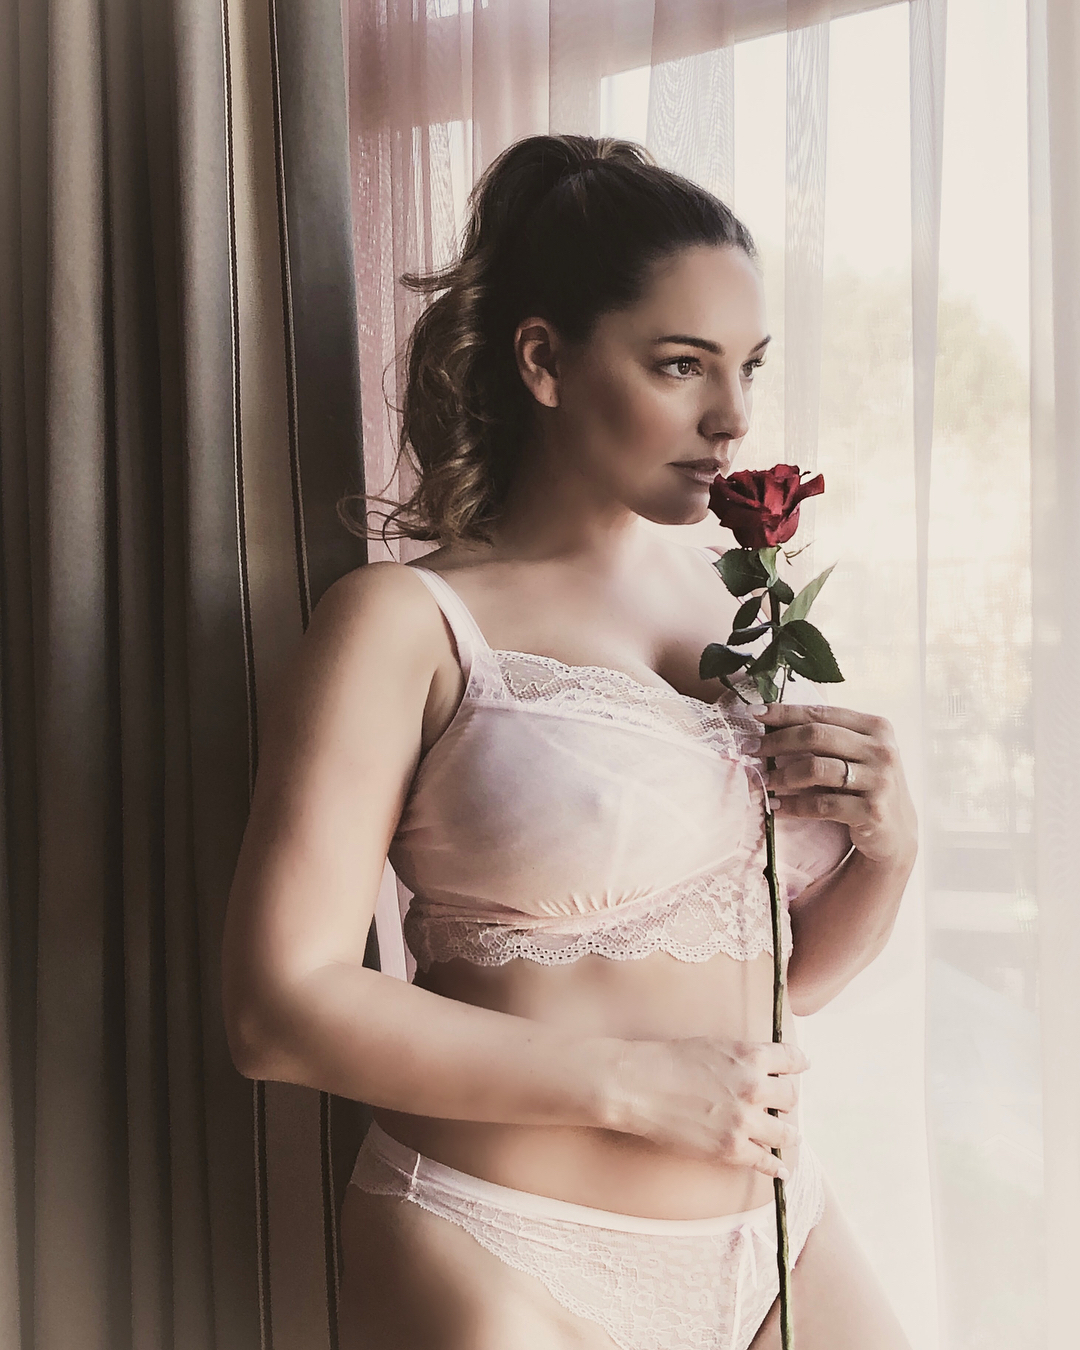 Kelly Brook Valentines Day Photoshoot 2018 08 GotCeleb